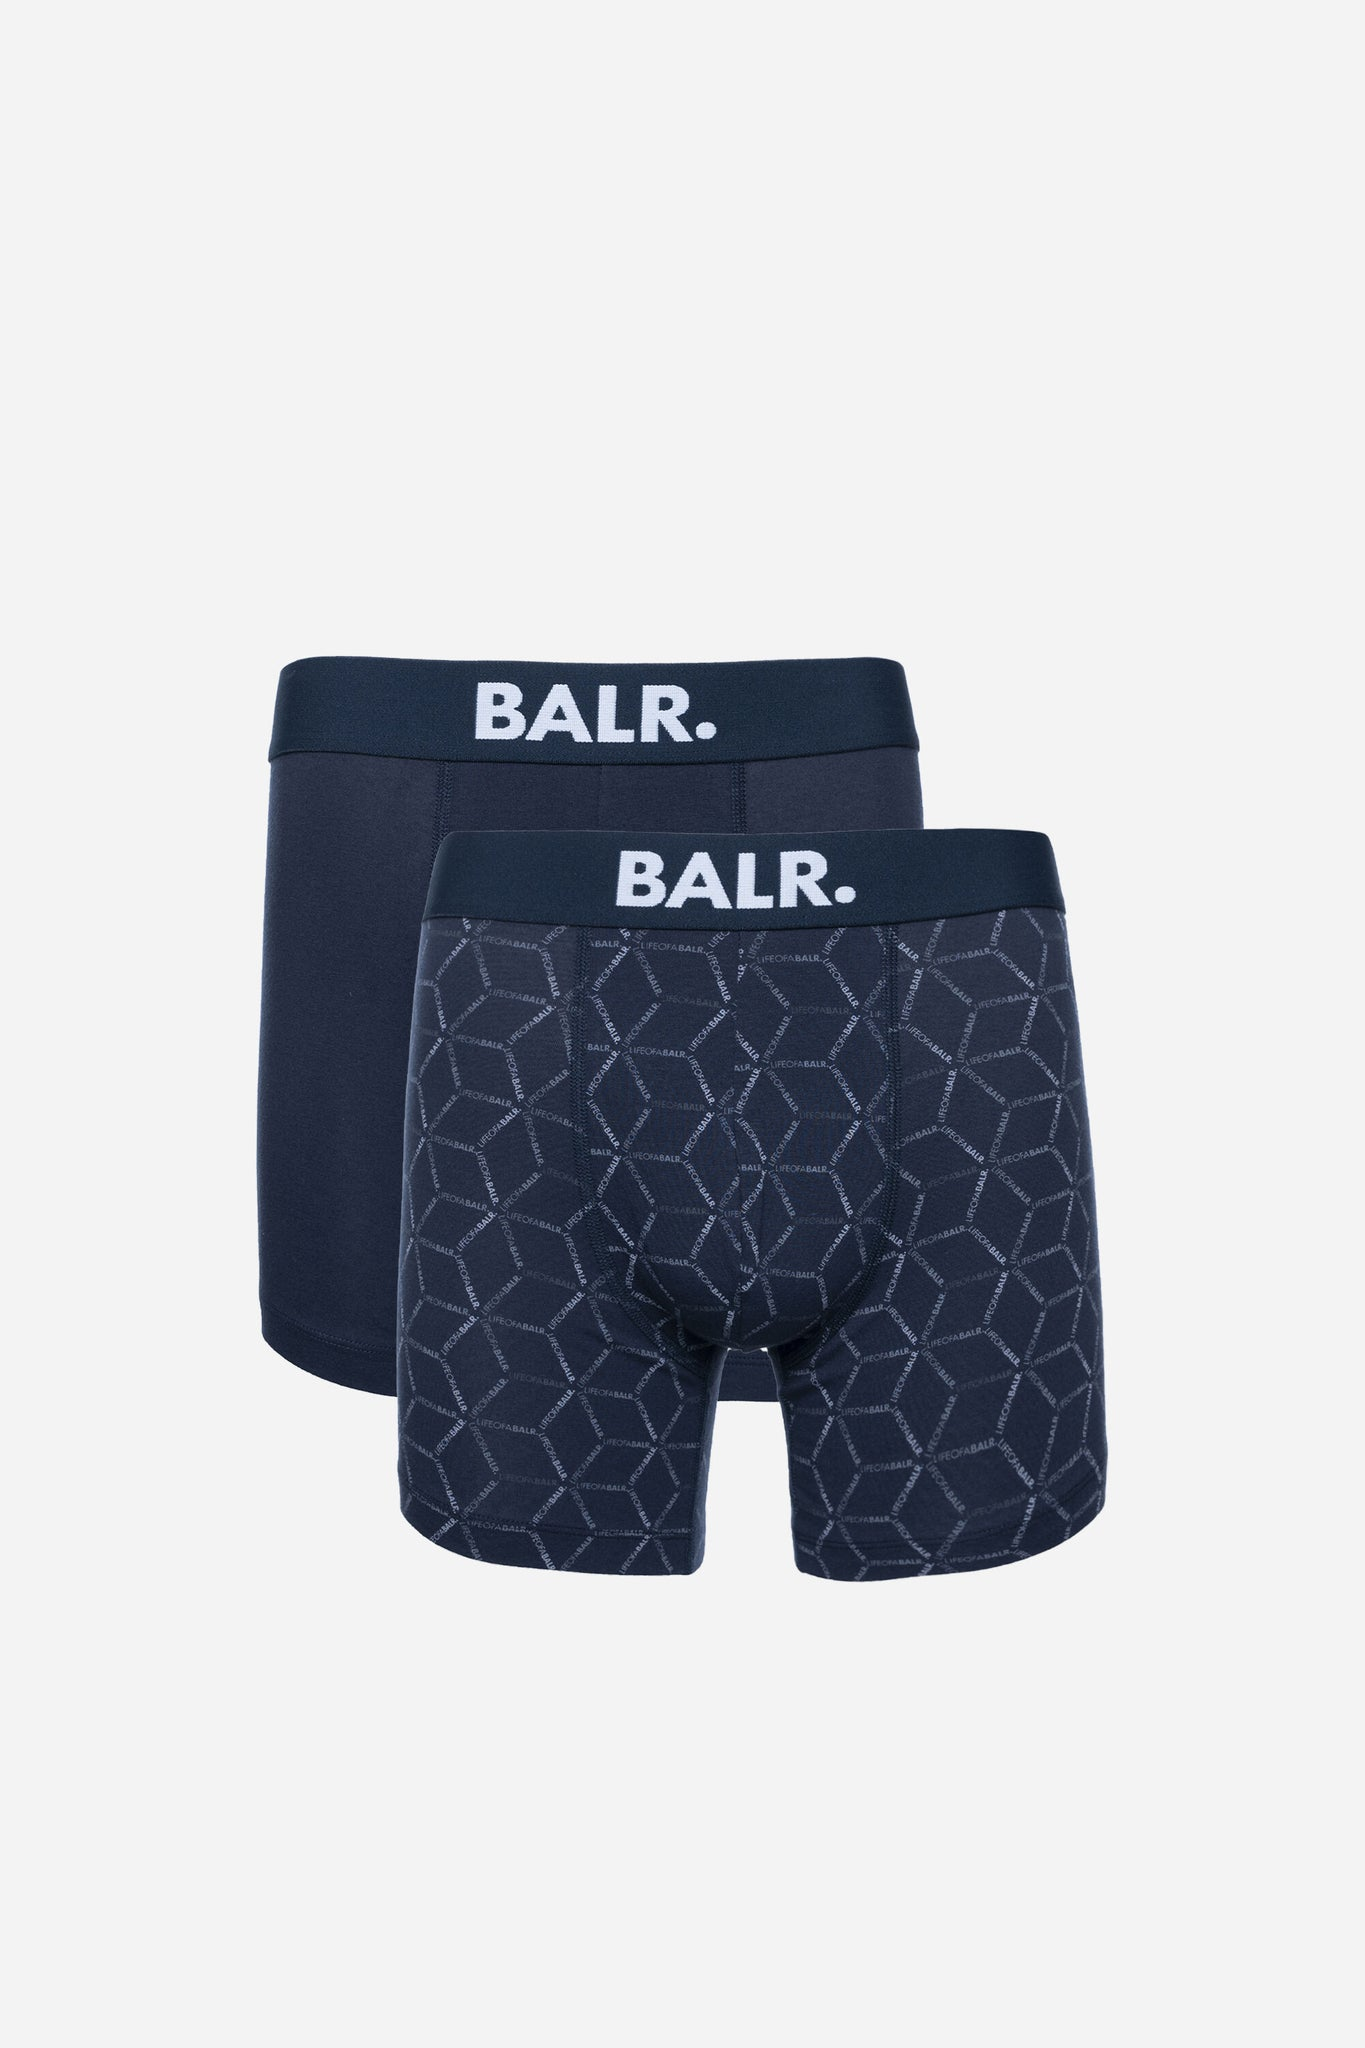 BALR. Trunks 2-Pack LOAB ONE